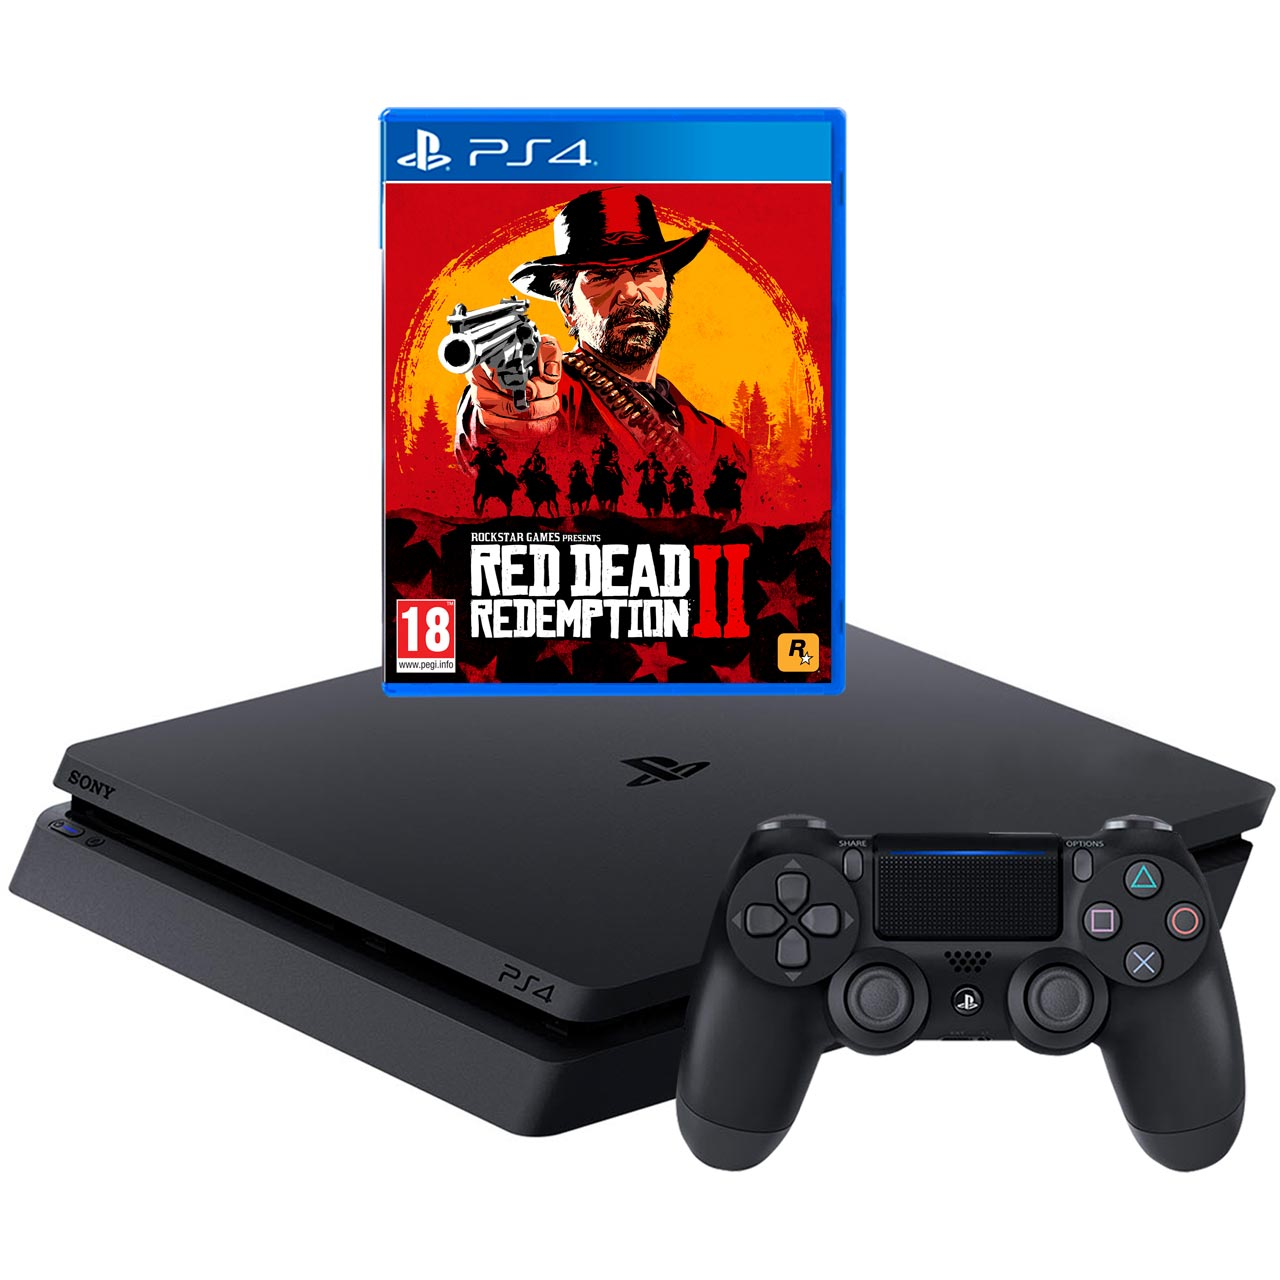 Game Console PLAYSTATION 4 500GB with Red Dead Redemption 2